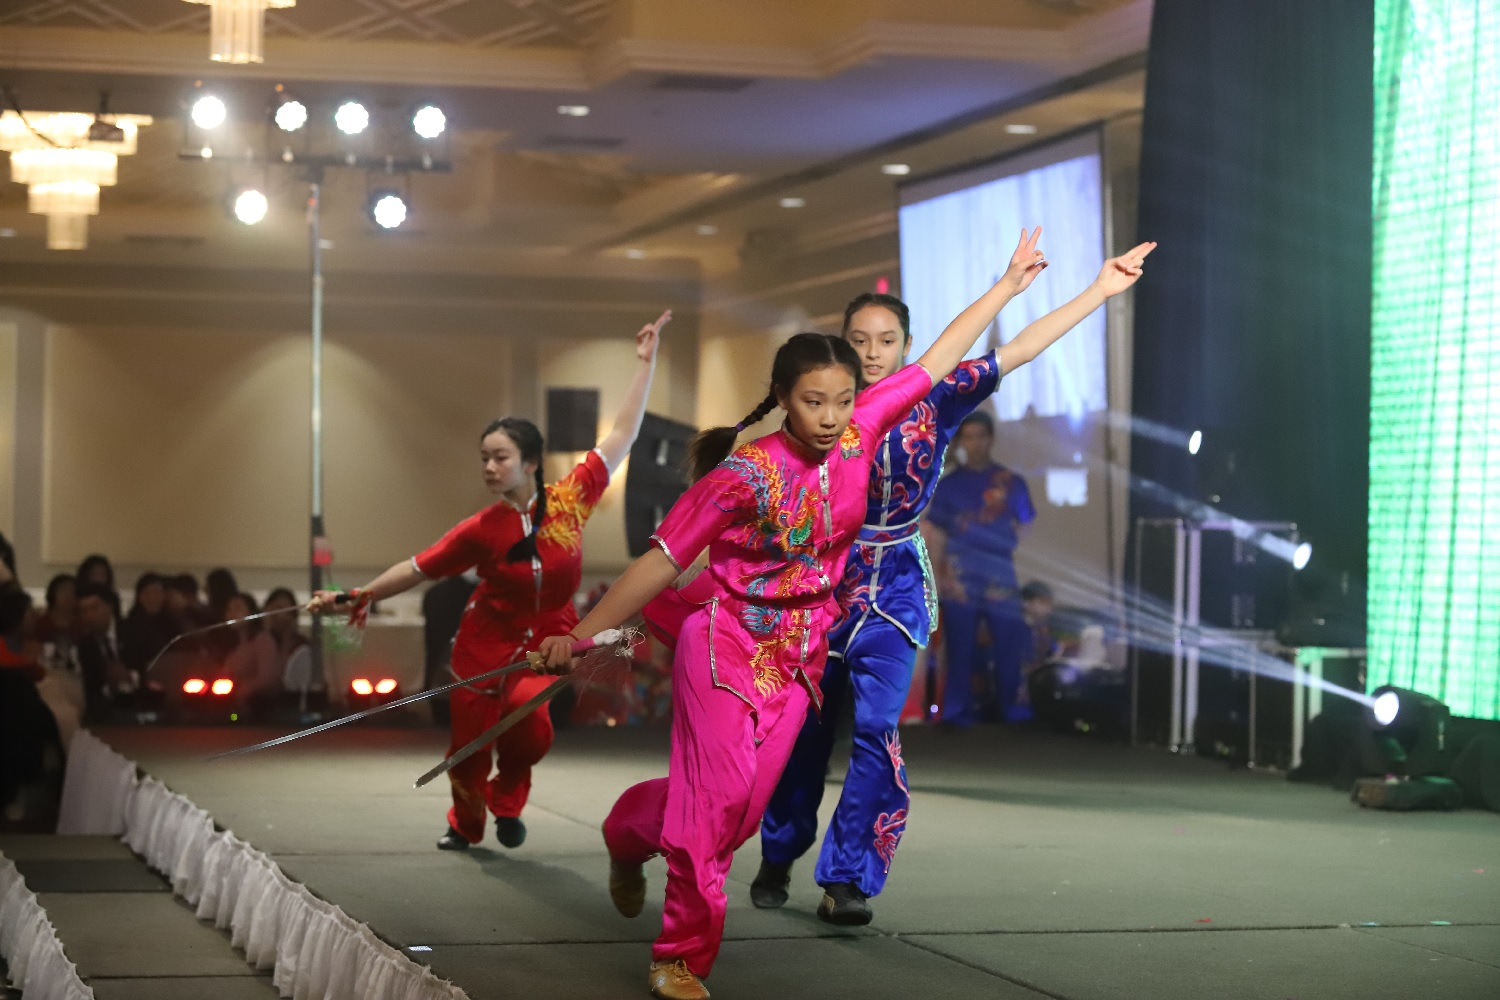 wayland-li-wushu-chinese-new-year-henan-association-canada-2019-15.jpg